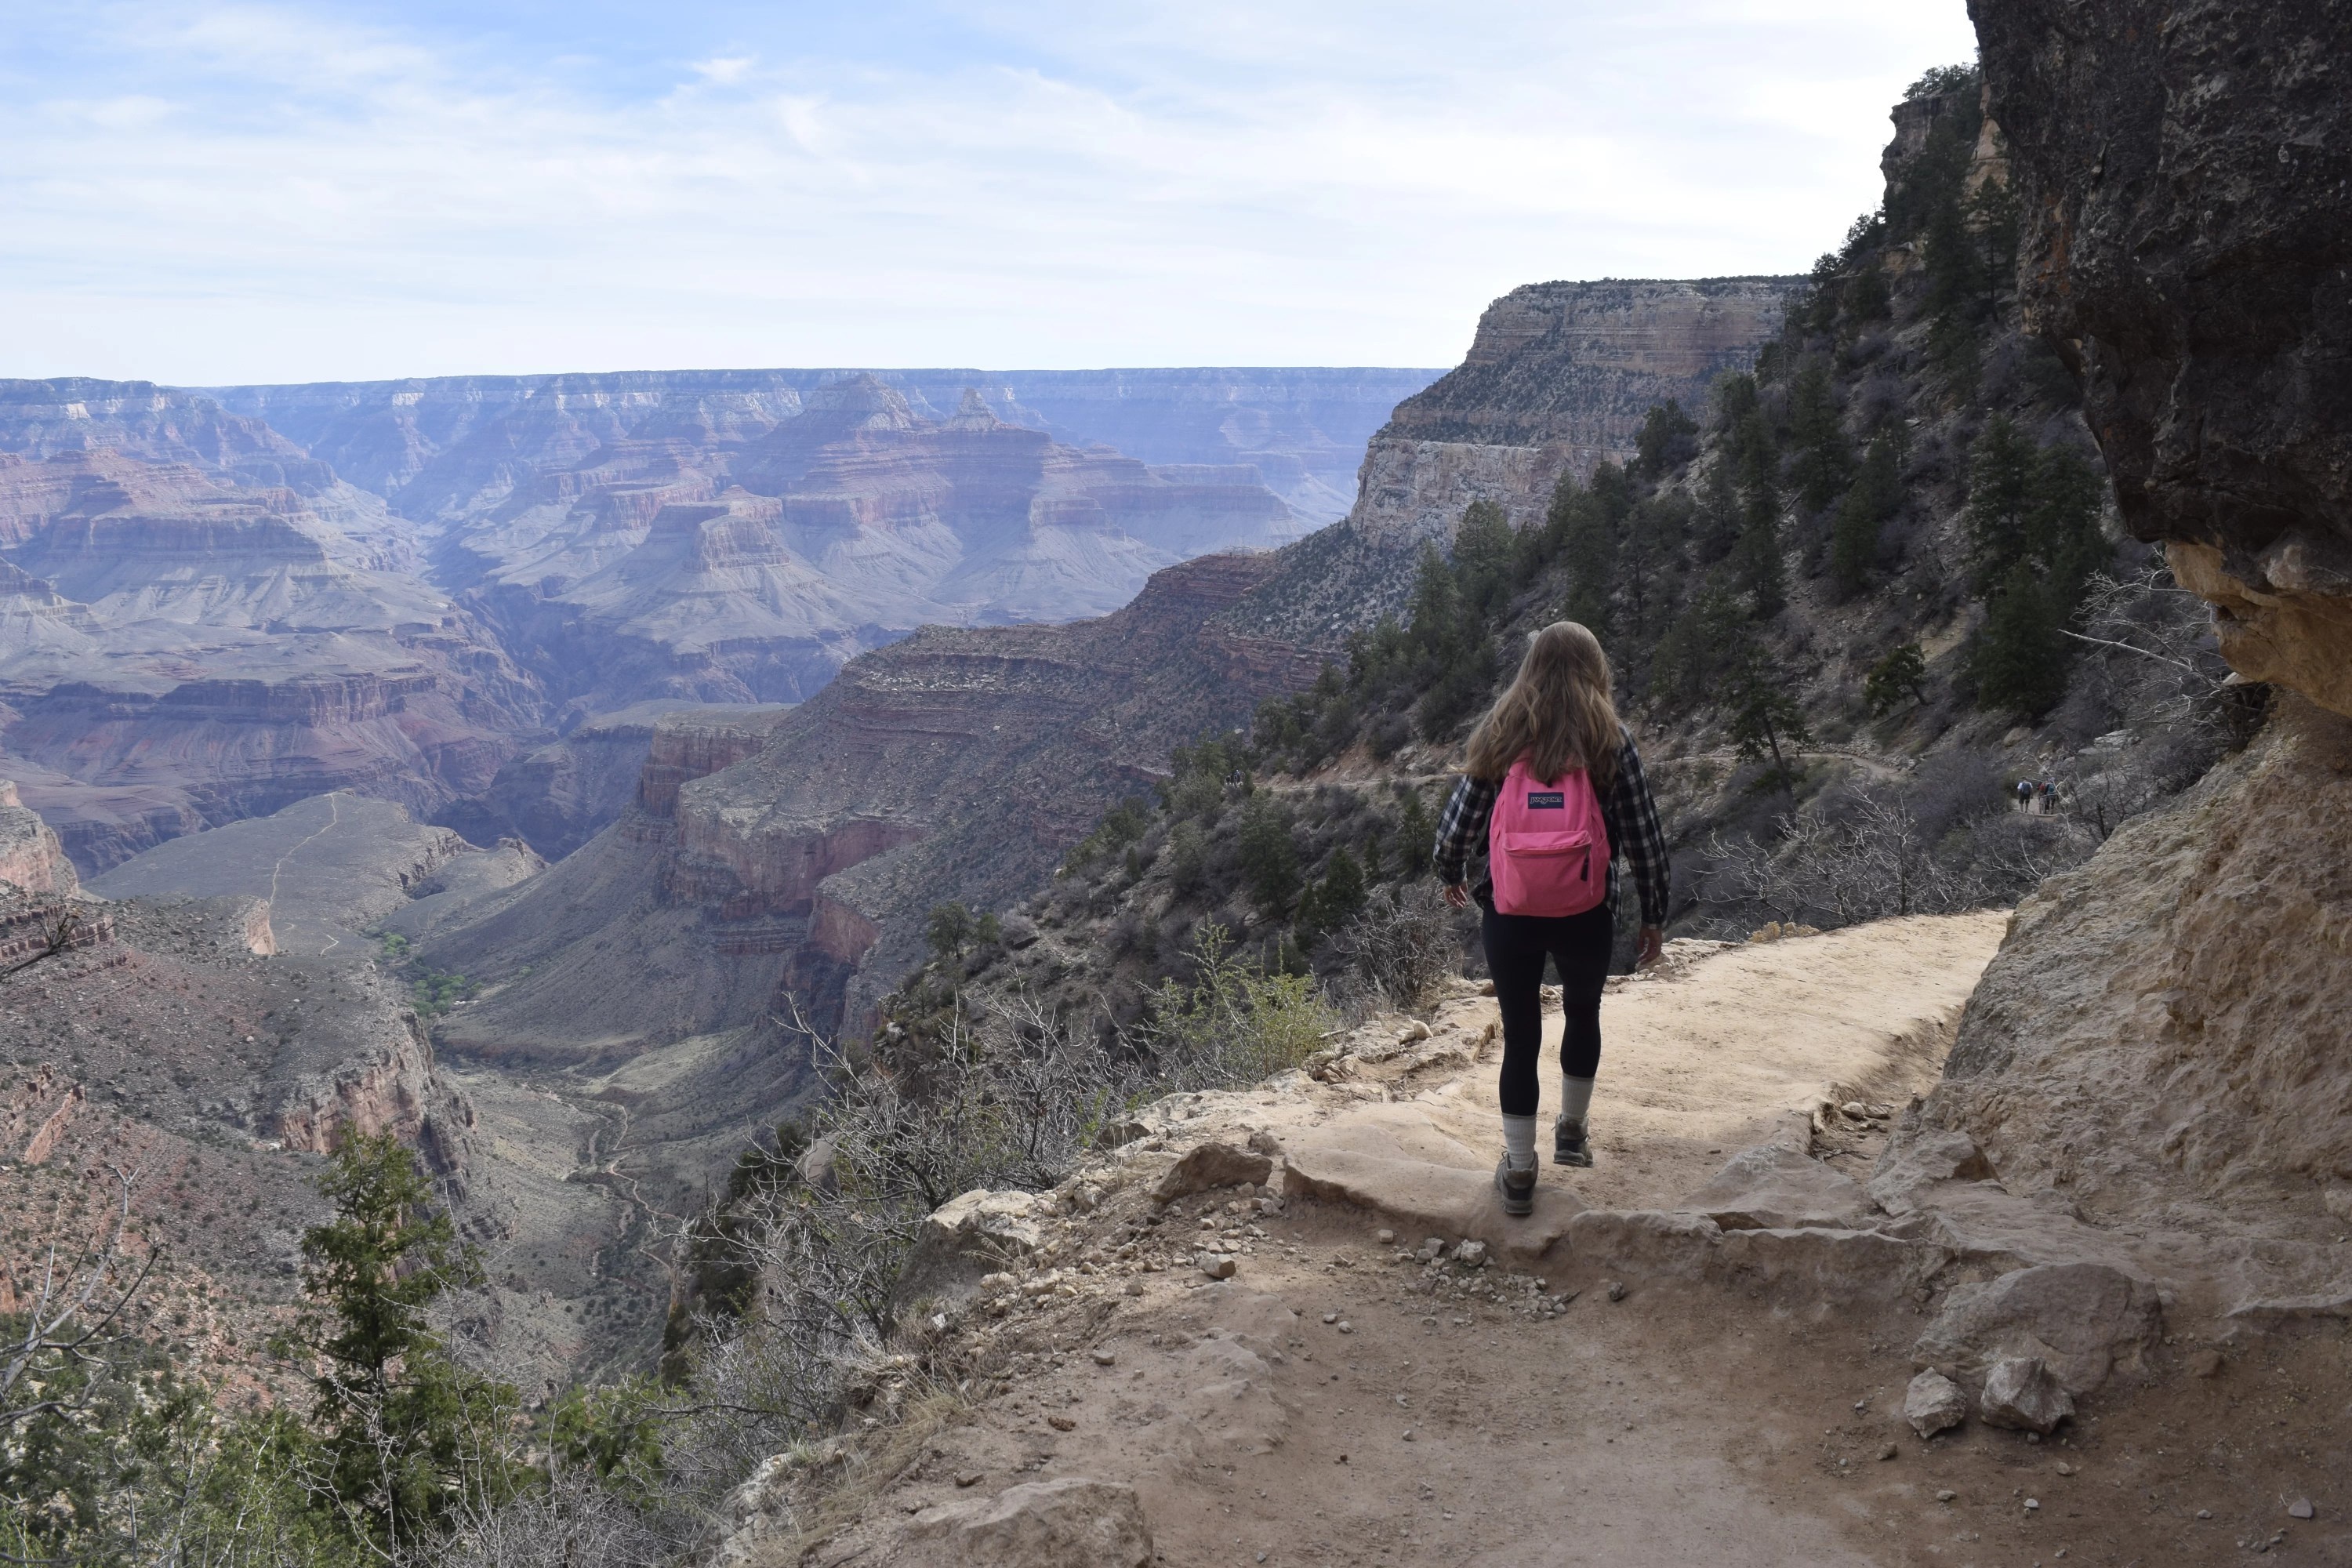 Taken on the Bright Angel Trail in the Grand Canyon.